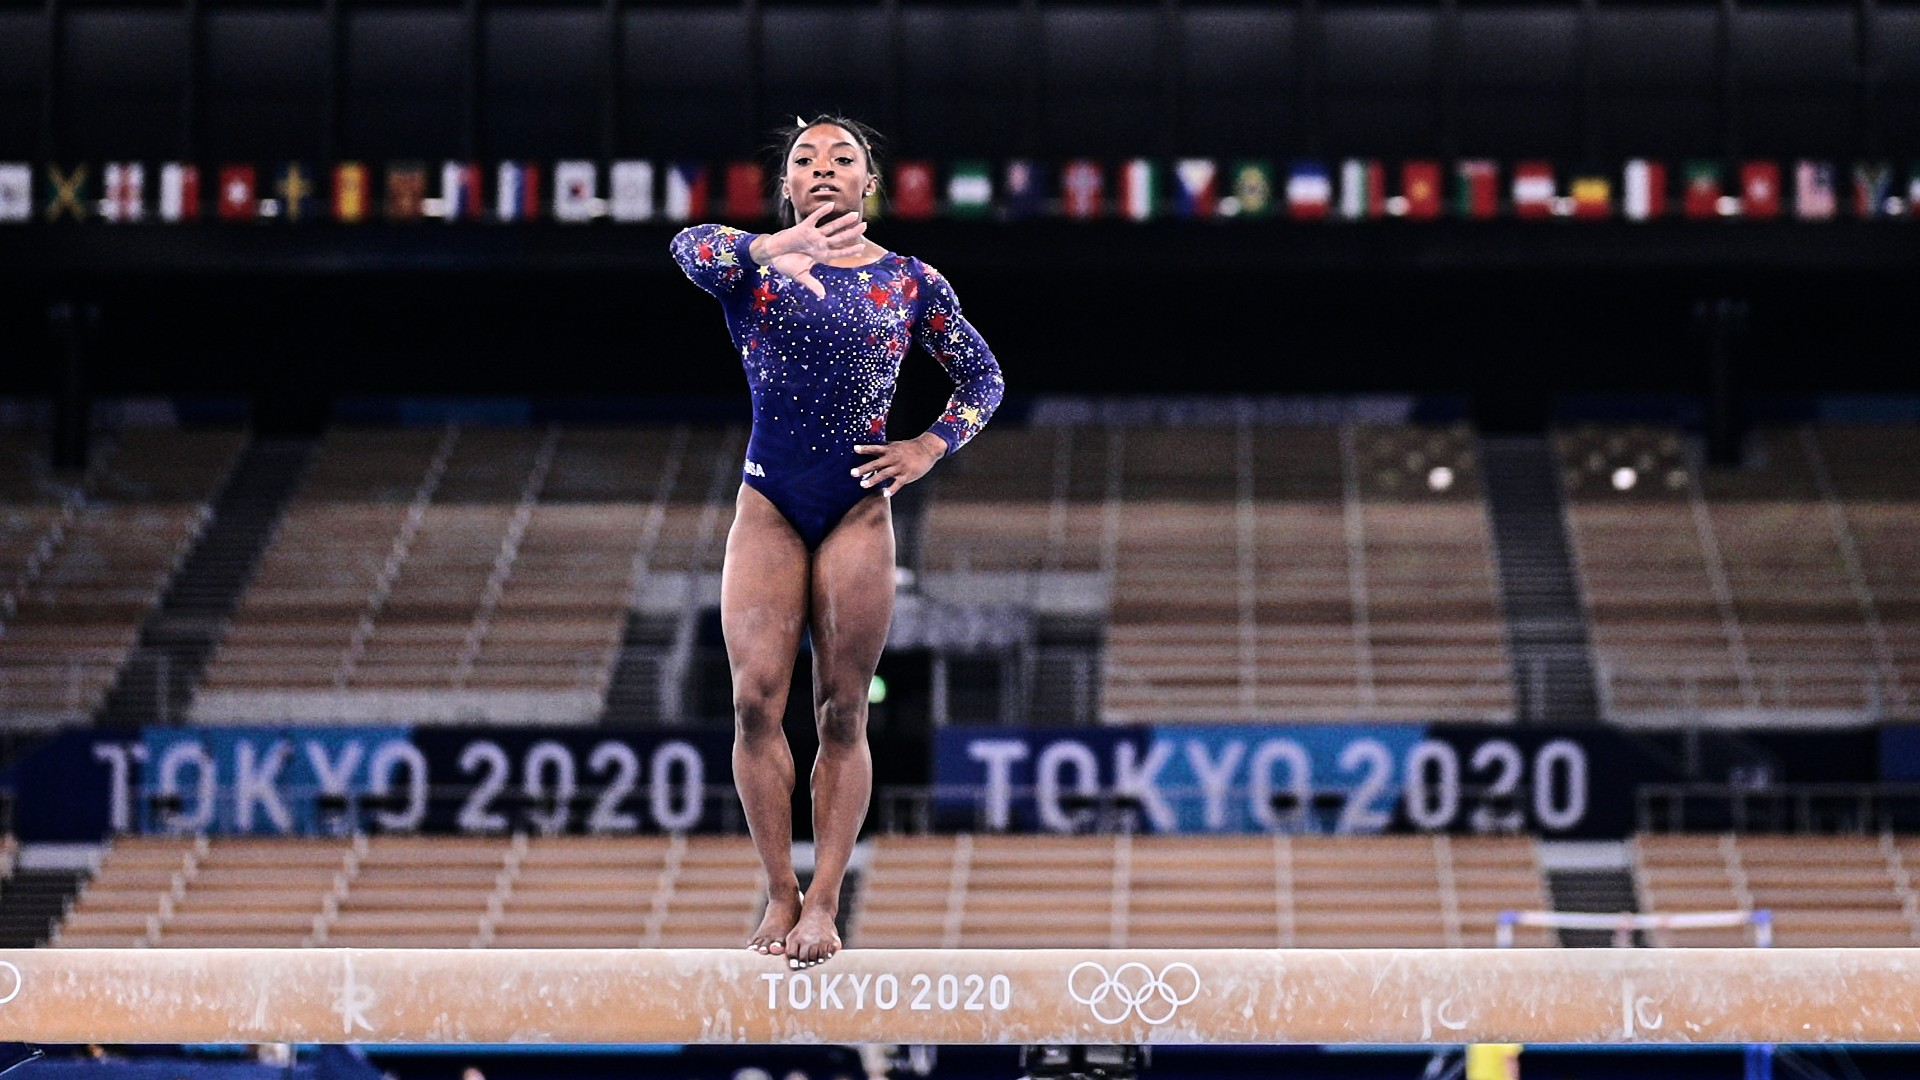 Simone Biles to participate in the balance beam final after withdrawing from other Olympic gymnastics events